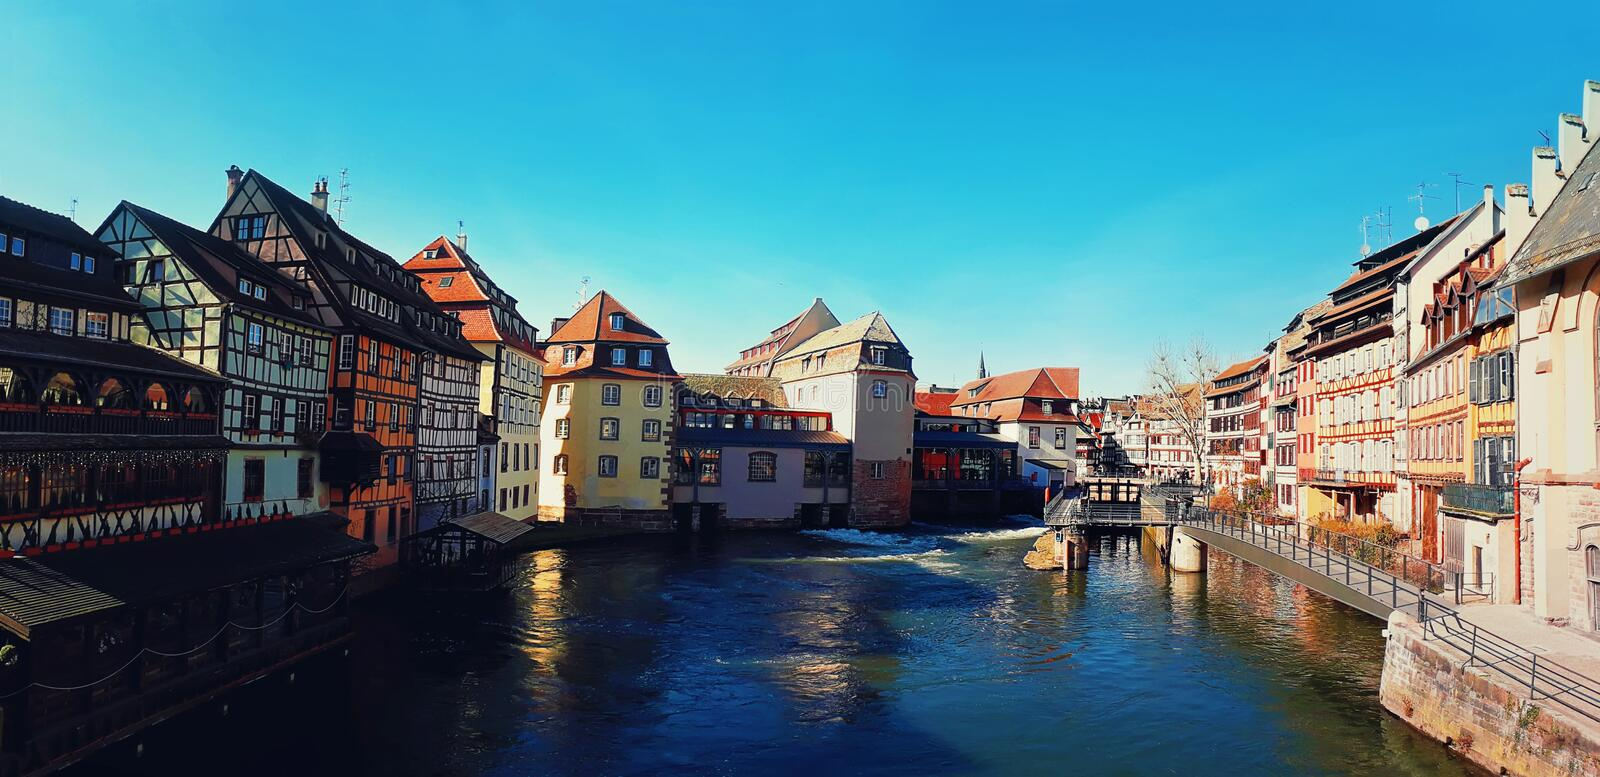 Medieval fairytale town of Strasbourg, UNESCO World Heritage Site, Alsace, France royalty free stock photos